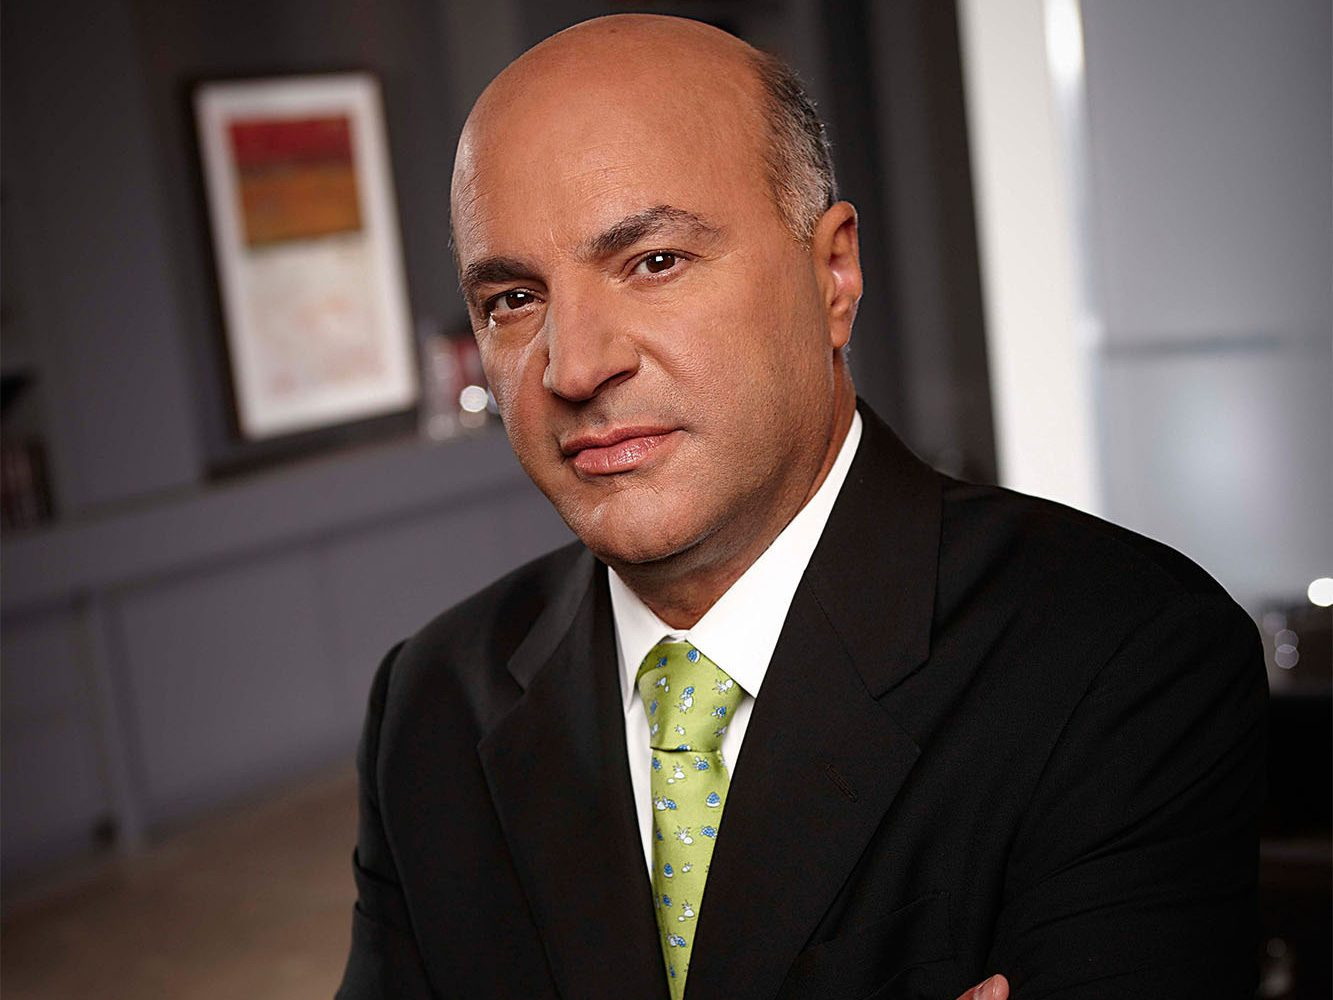 16. Kevin O'Leary